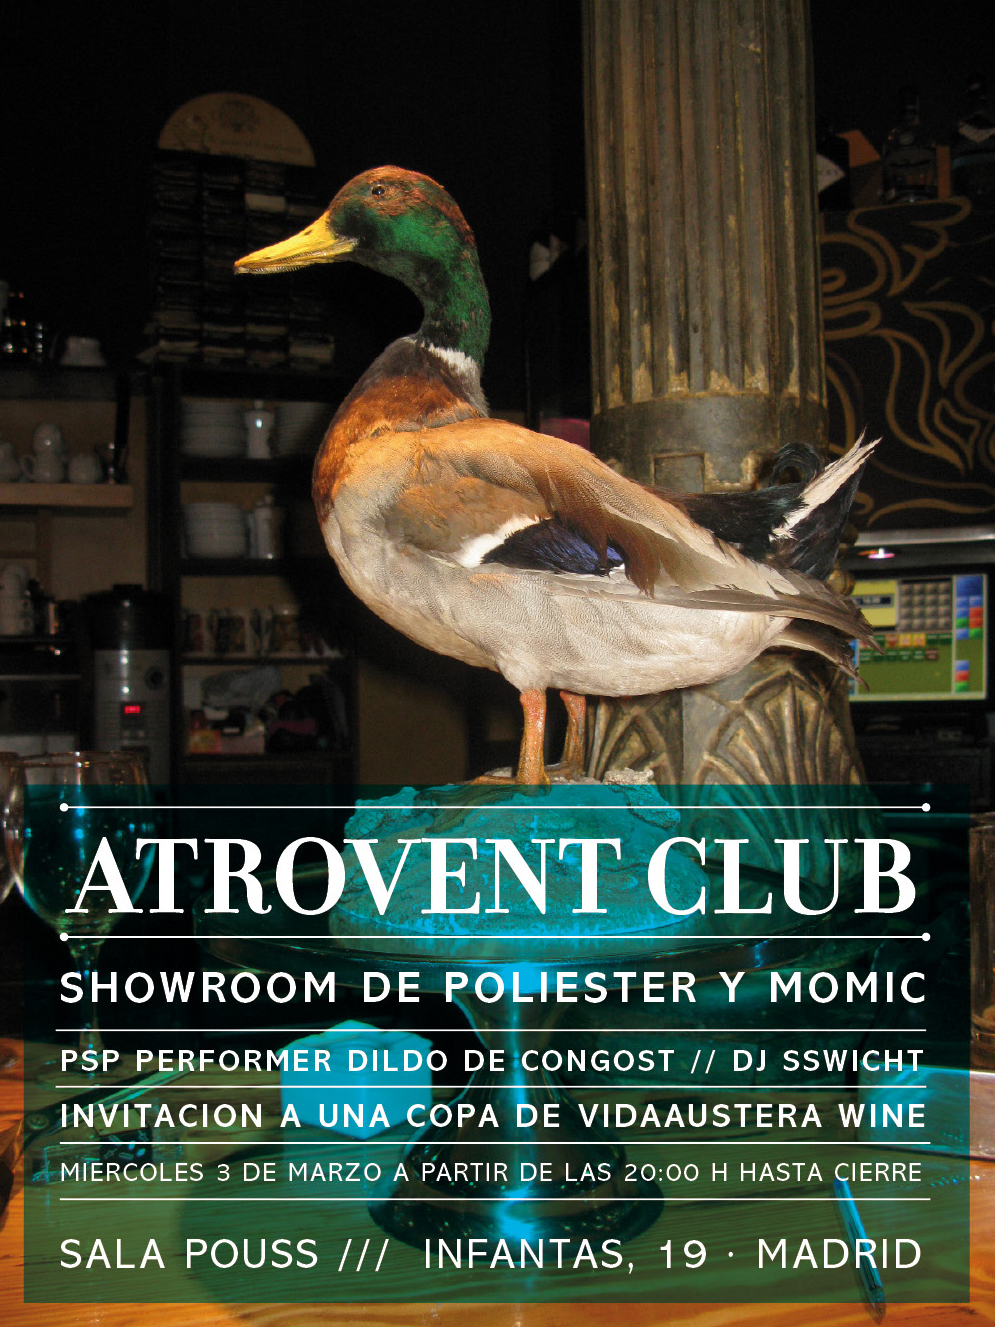 Atrovent Club